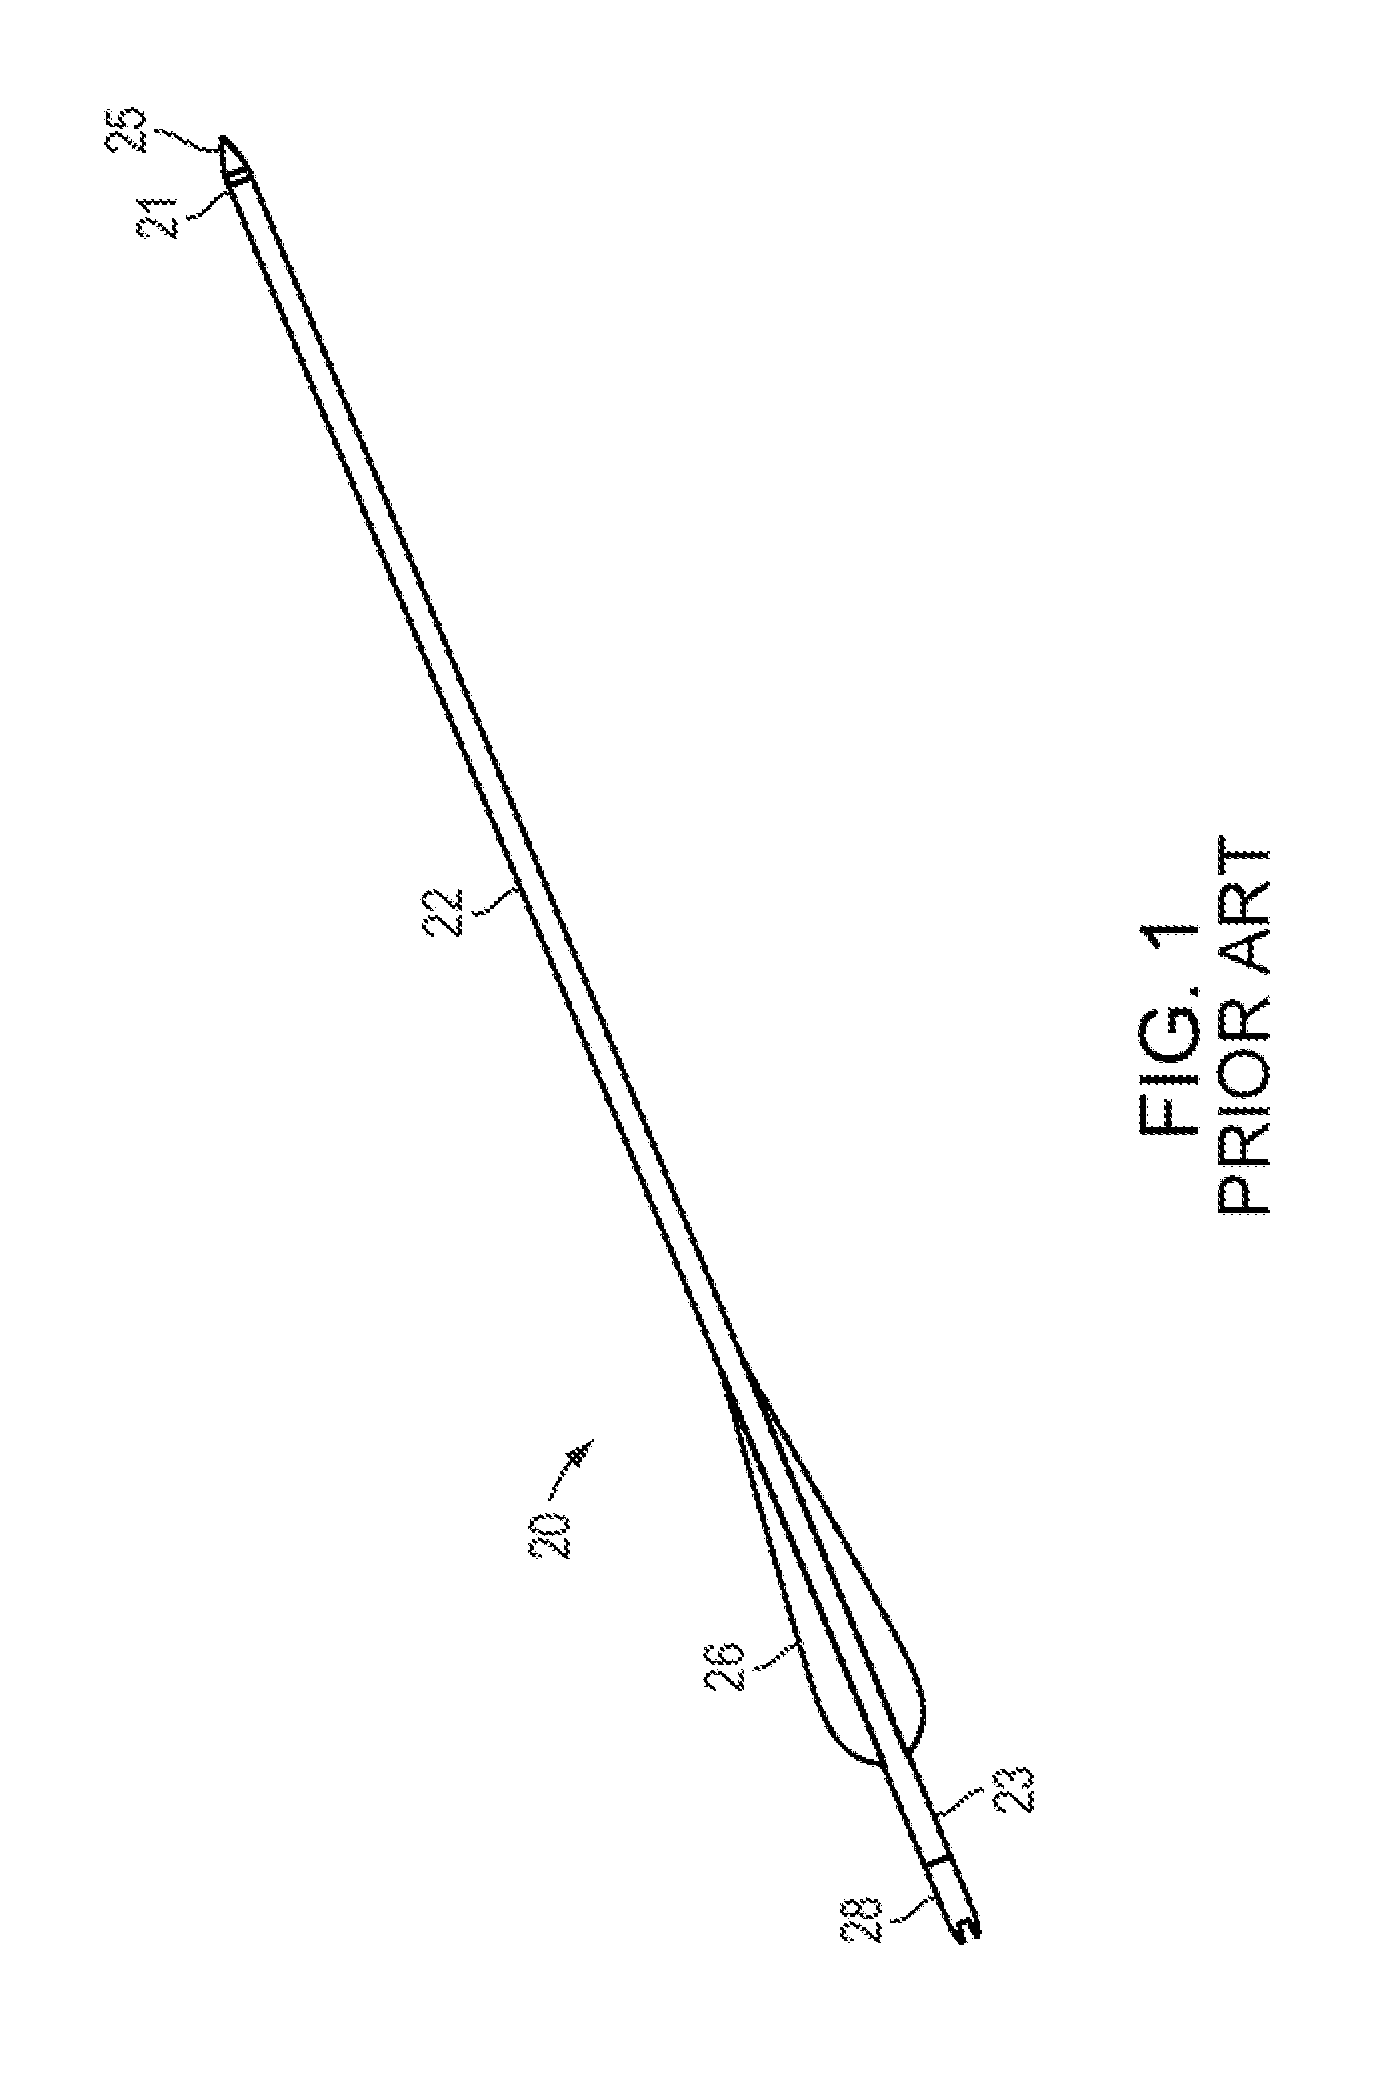 patent us20130012343 - systems and methods for archery equipment